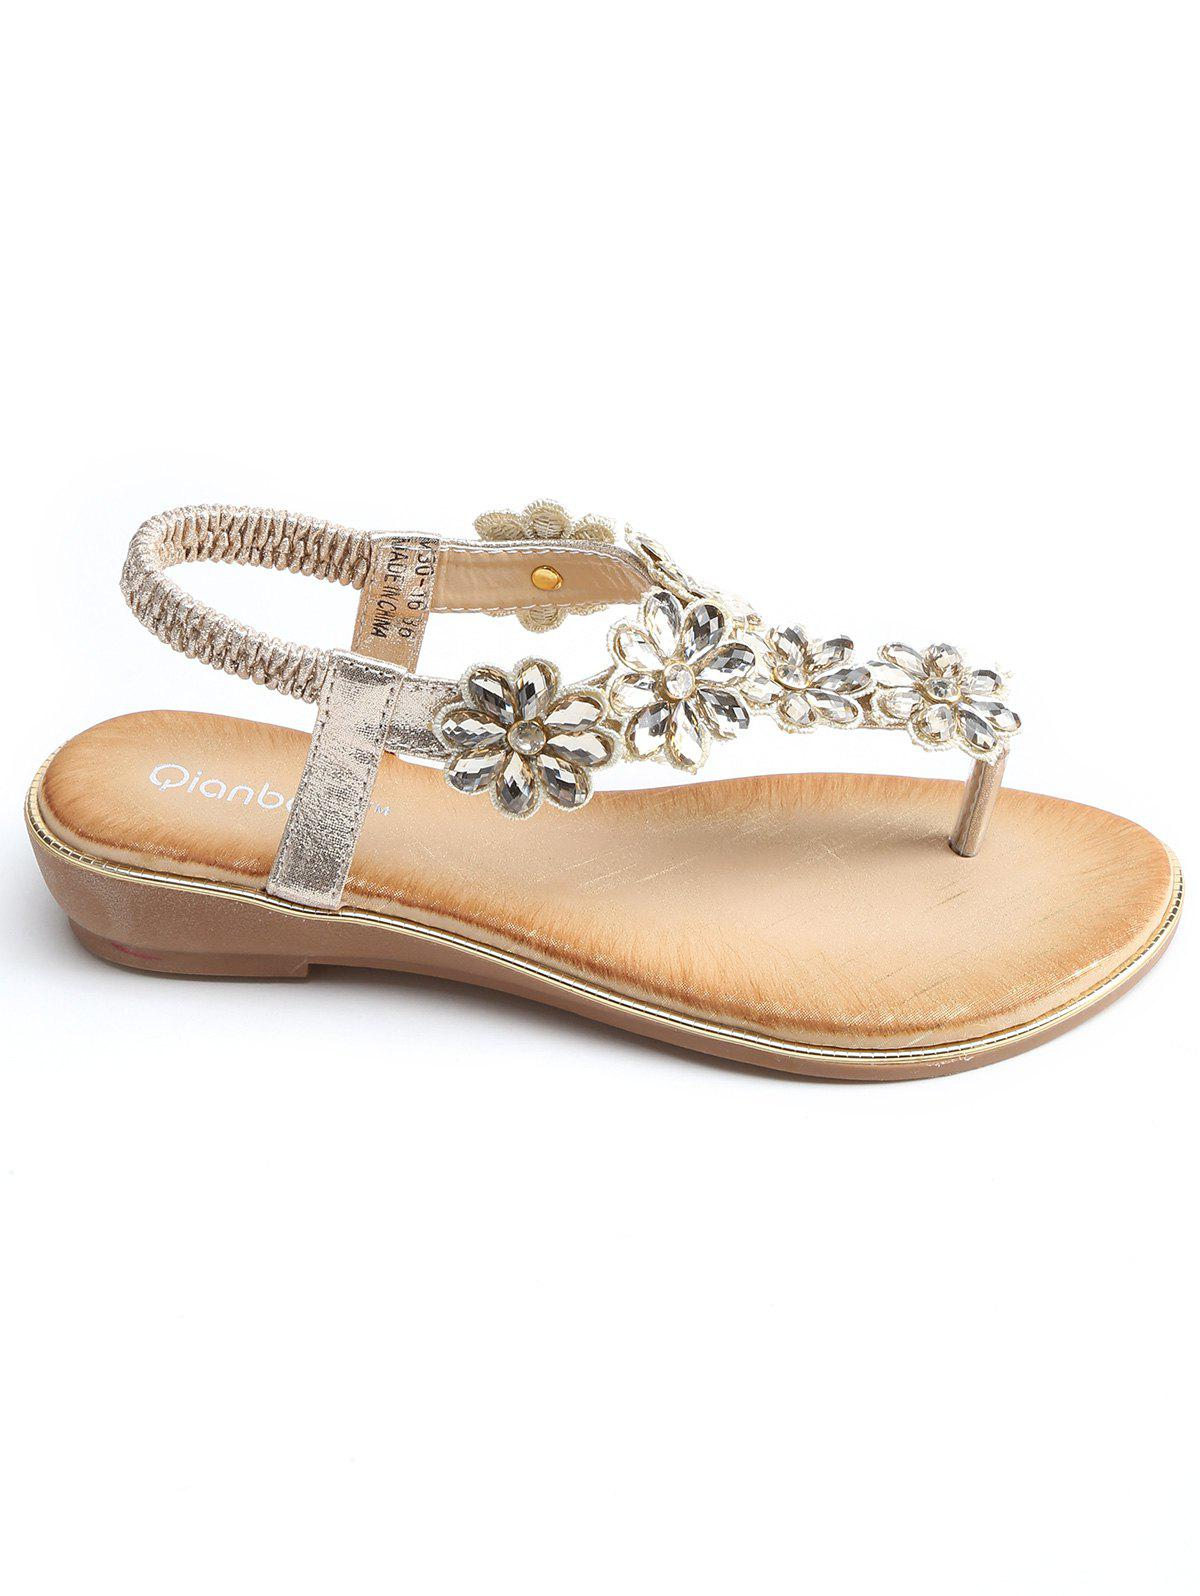 Outfits T Strap Faux Crystal Floral PU Leather Sandals